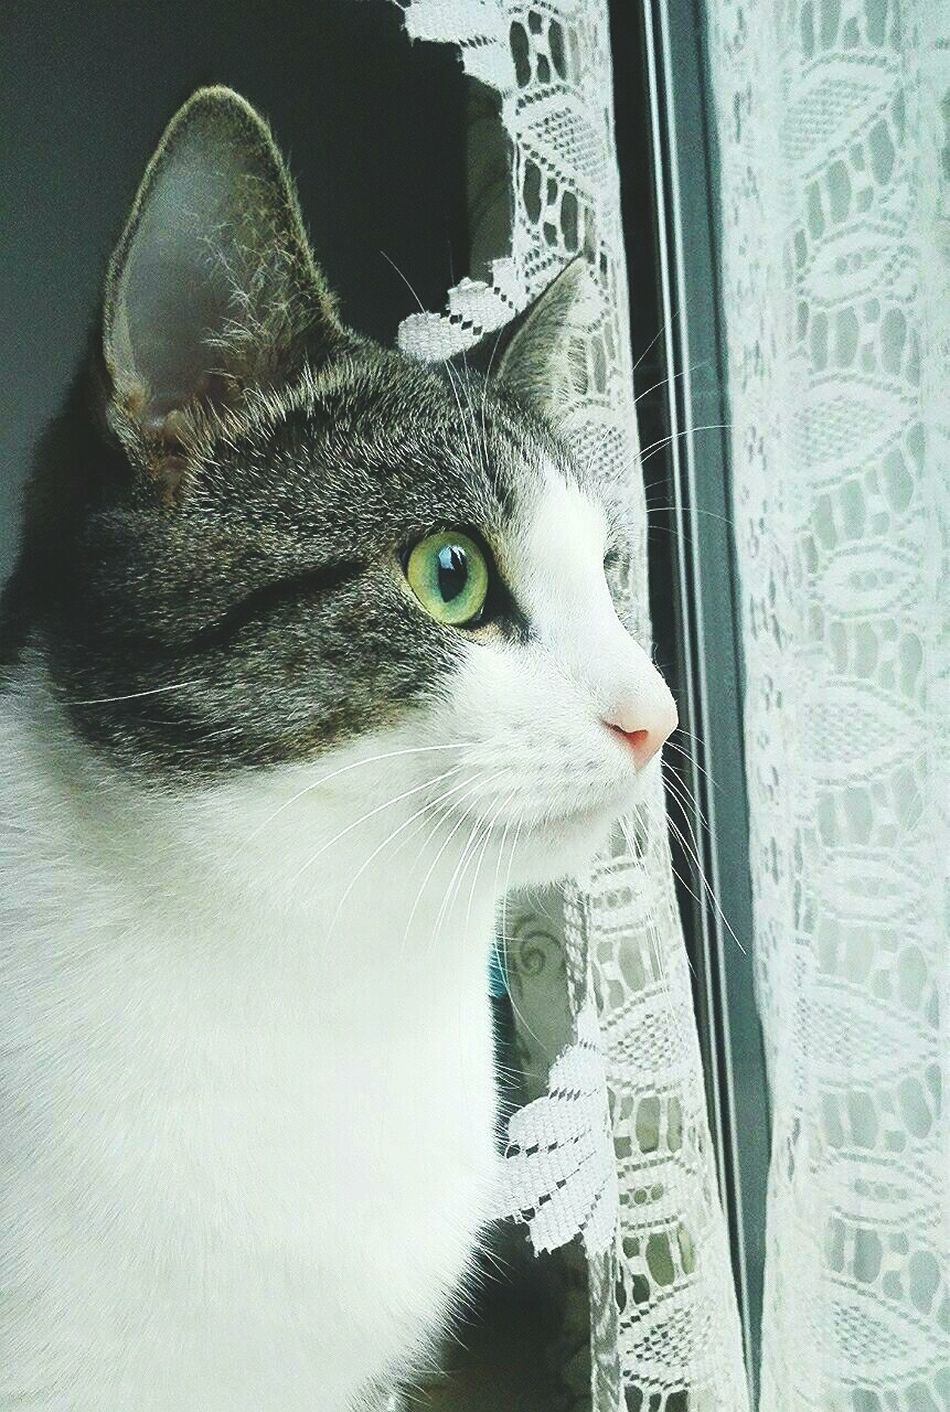 His name is Nisse, and he has Amazing Eyes <3 Cat Catlady Meow Greeneyes Cateyes Window Stare Animal Photography PhonePhotography Focused Catlovers Nopeople Deepeyes